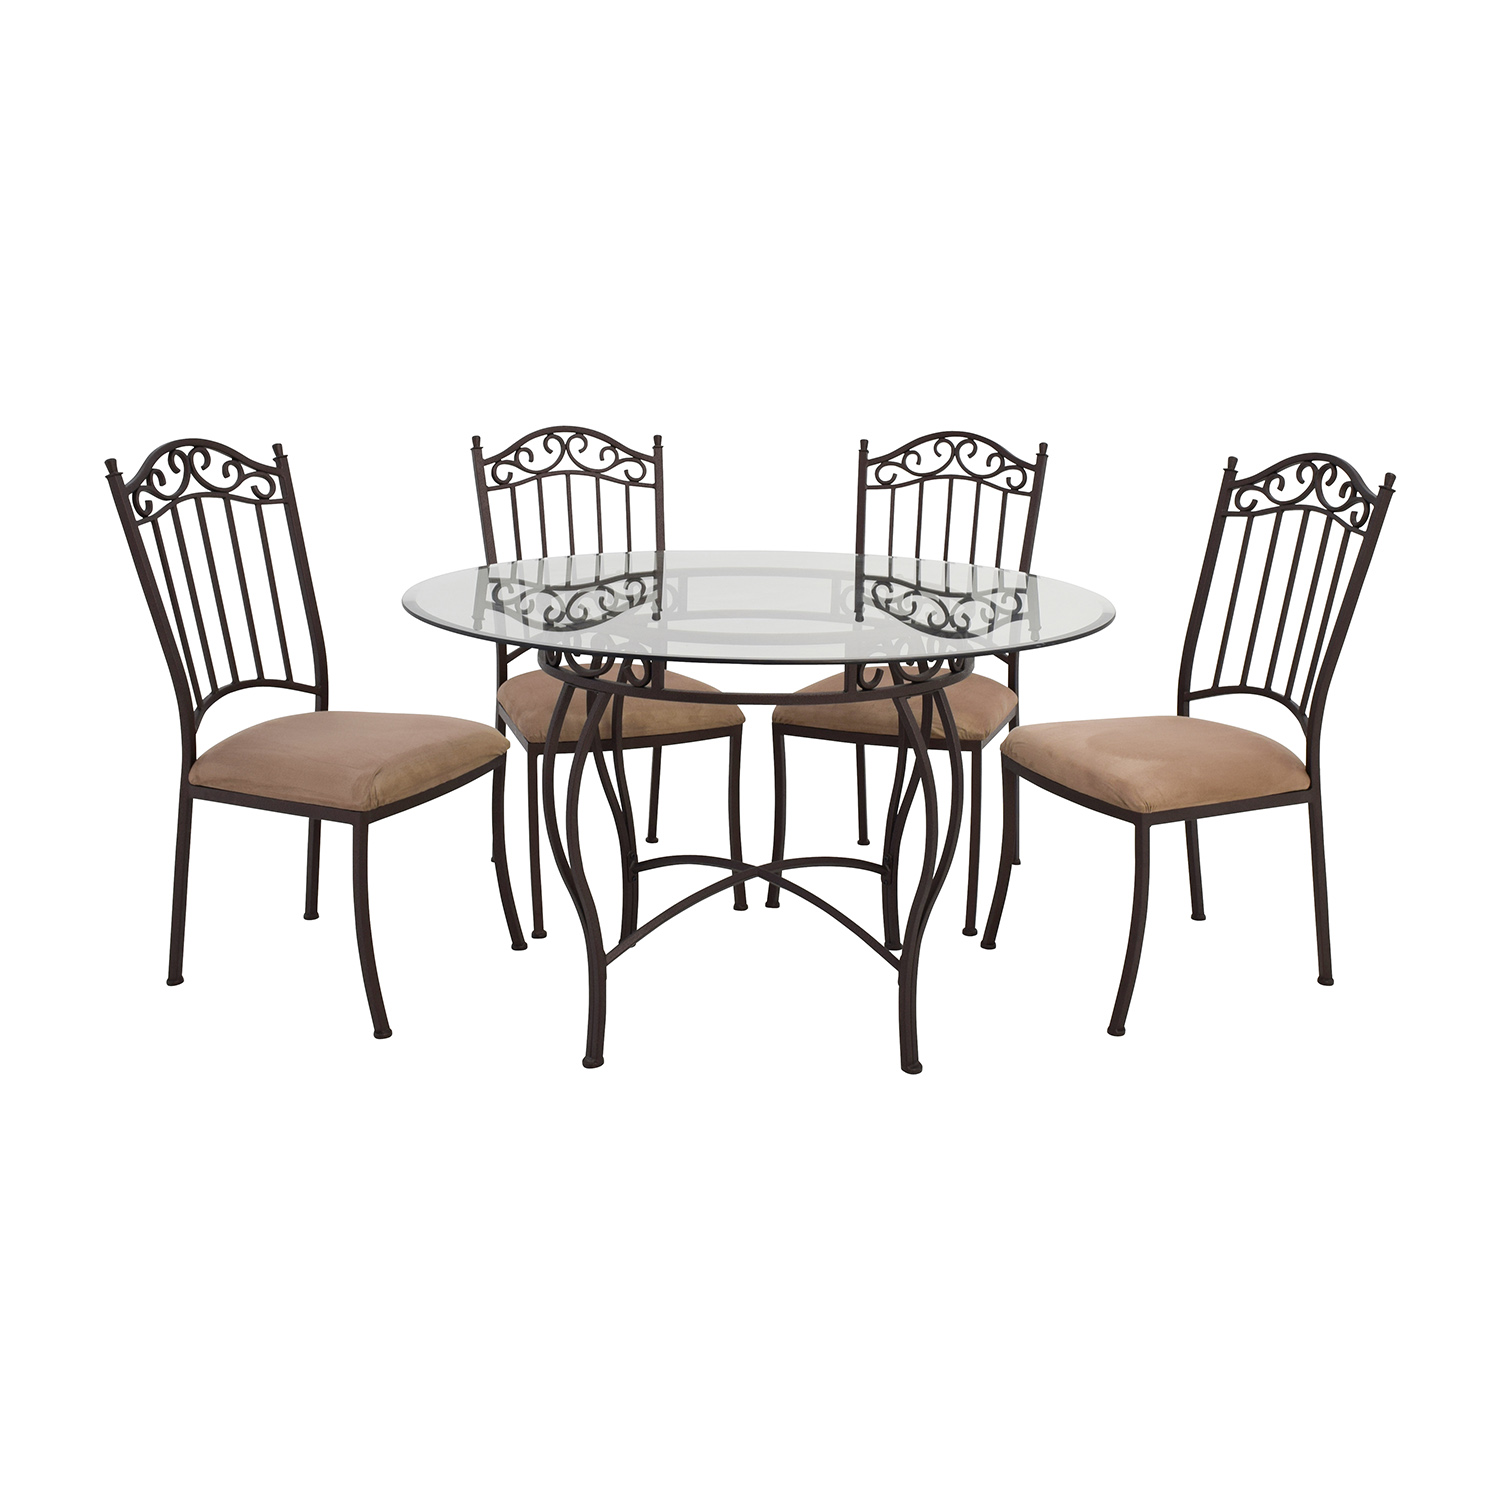 Wrought Iron Round Glass Table and Chairs for sale